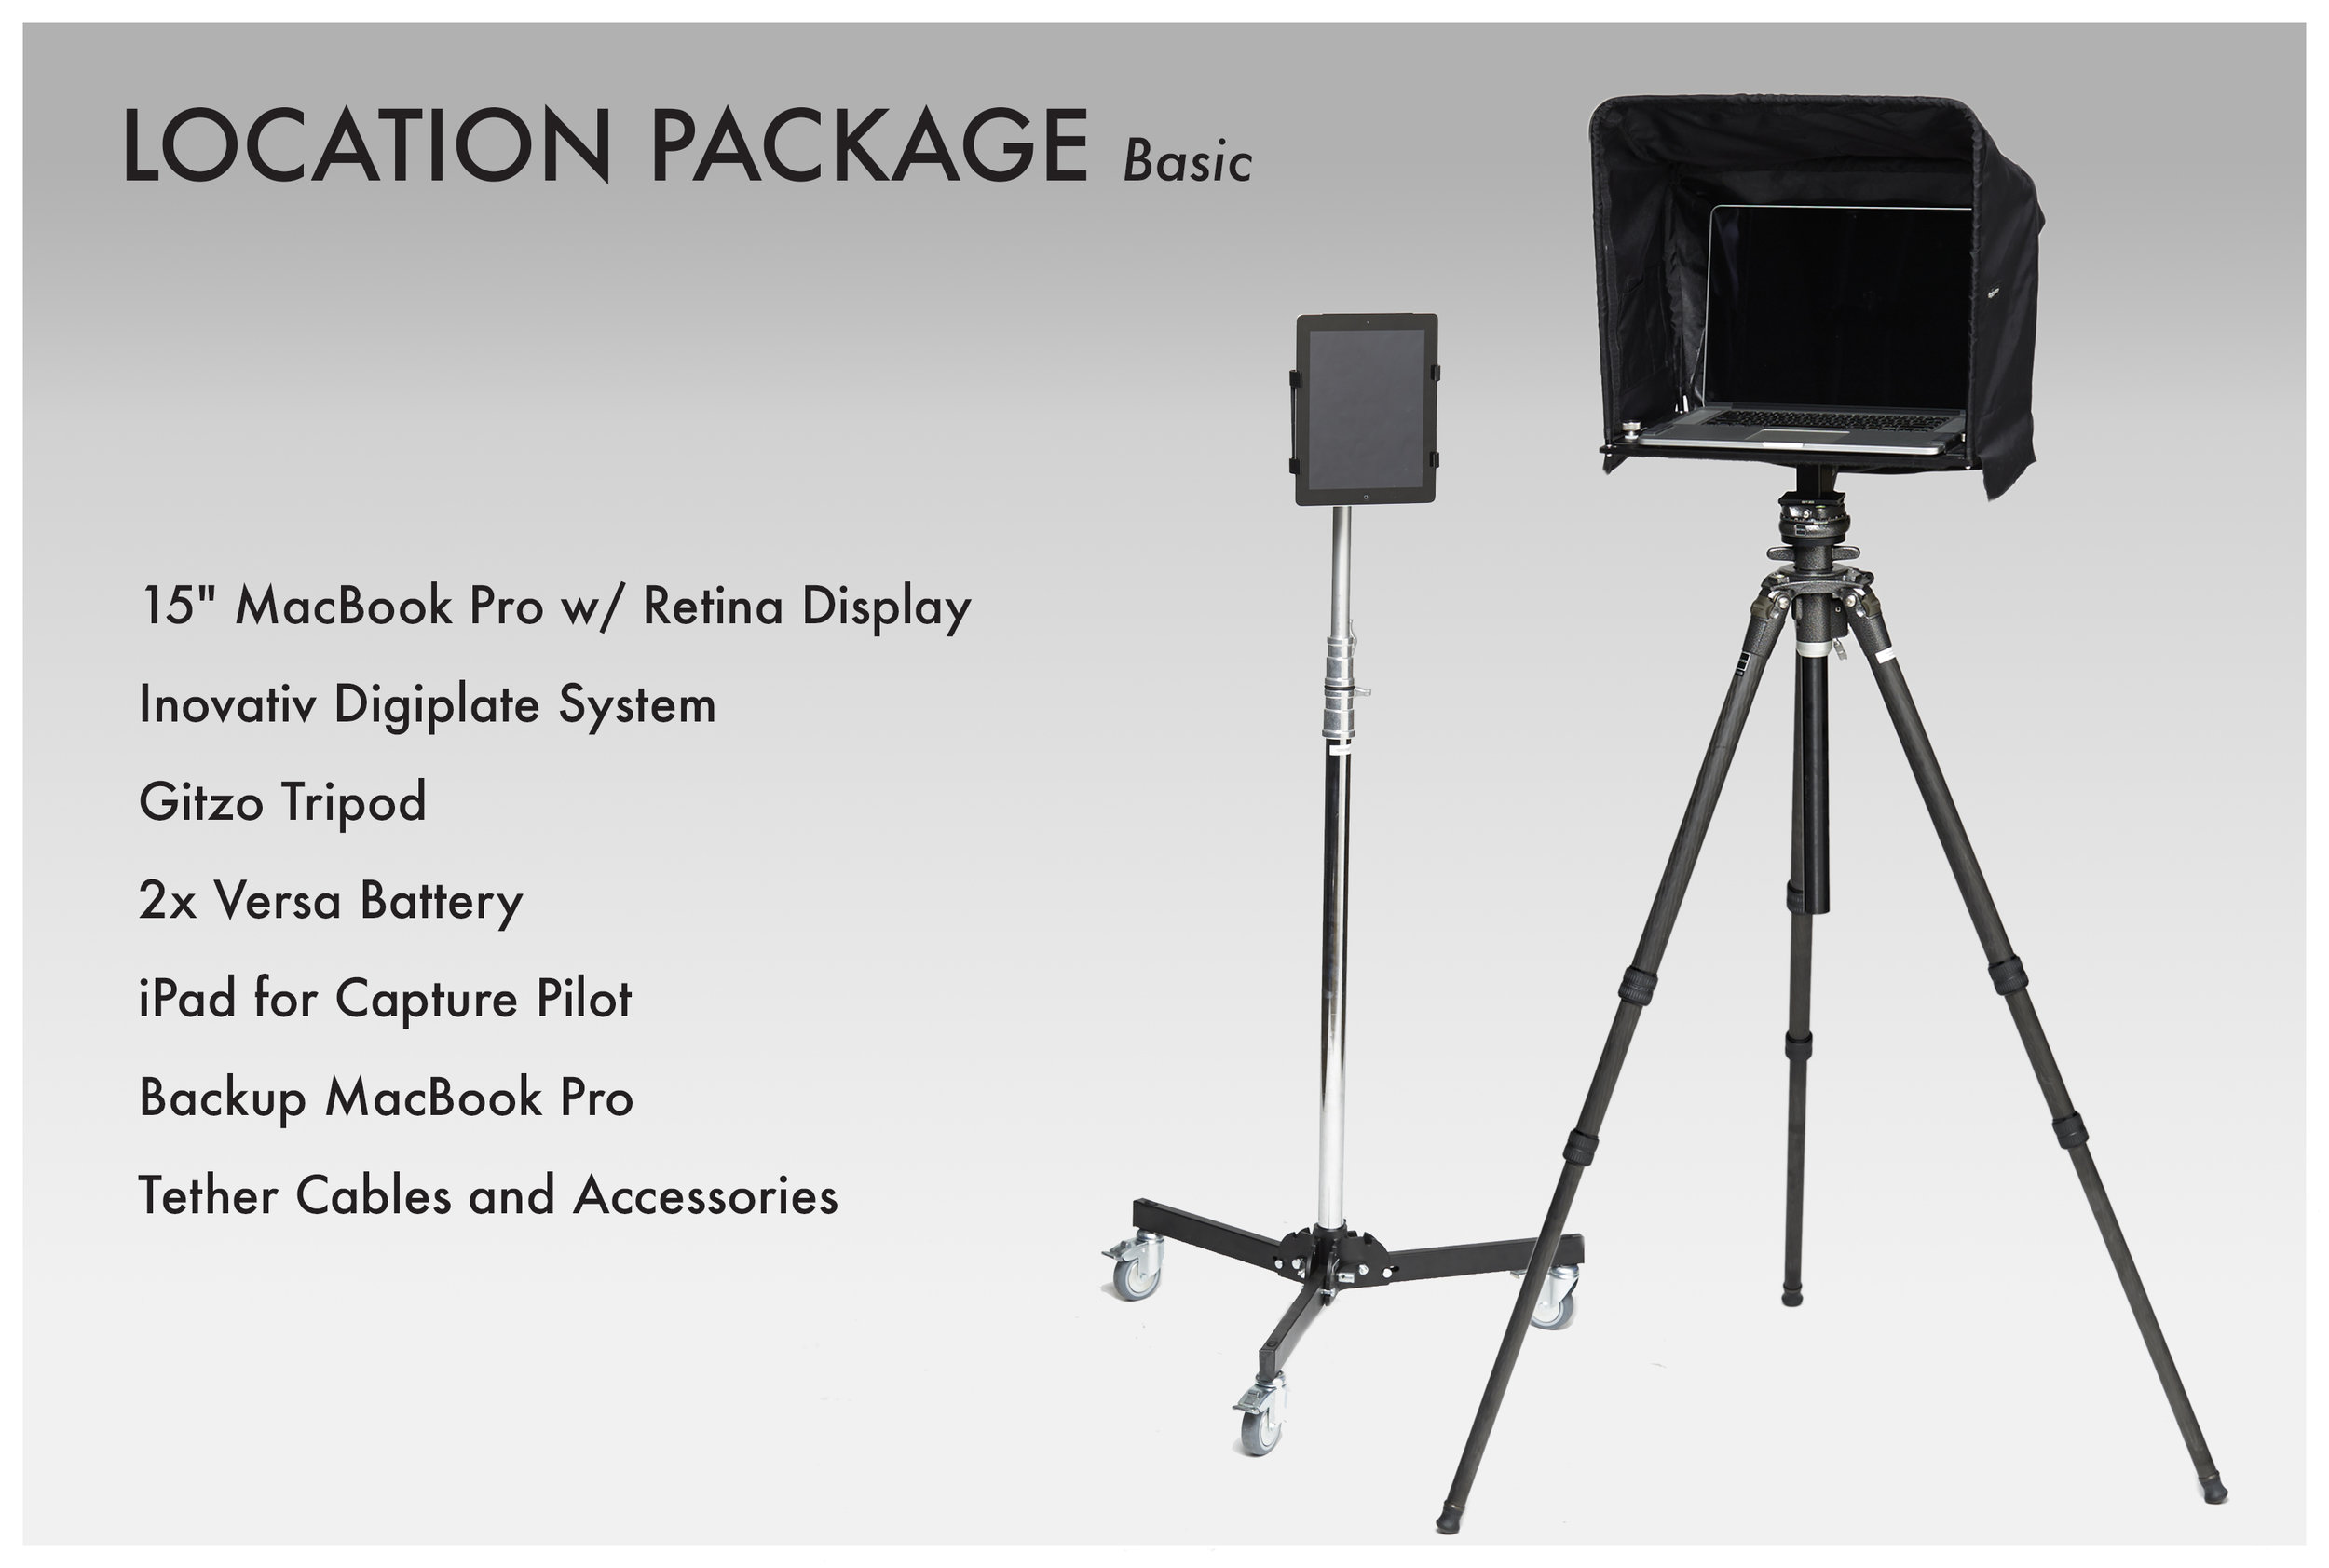 Location Package Basic